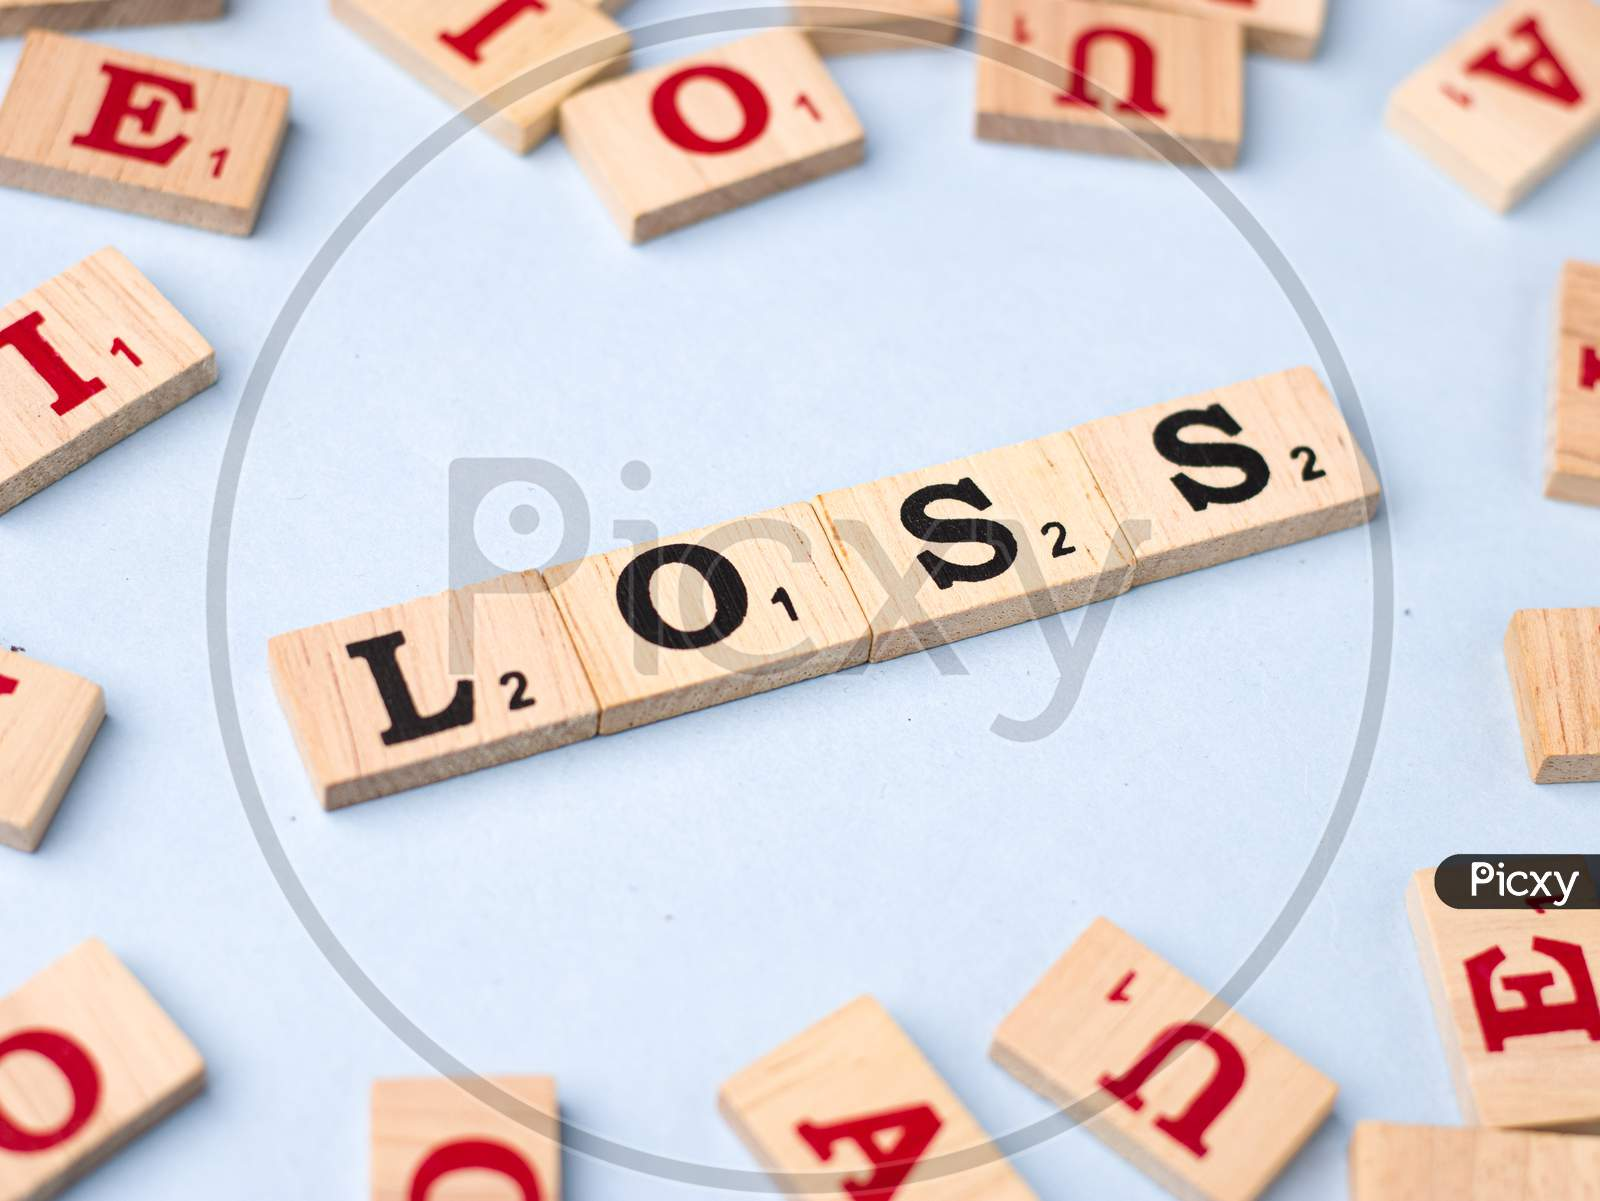 Assam, india - March 30, 2021 : Word LOSS written on wooden cubes stock image.